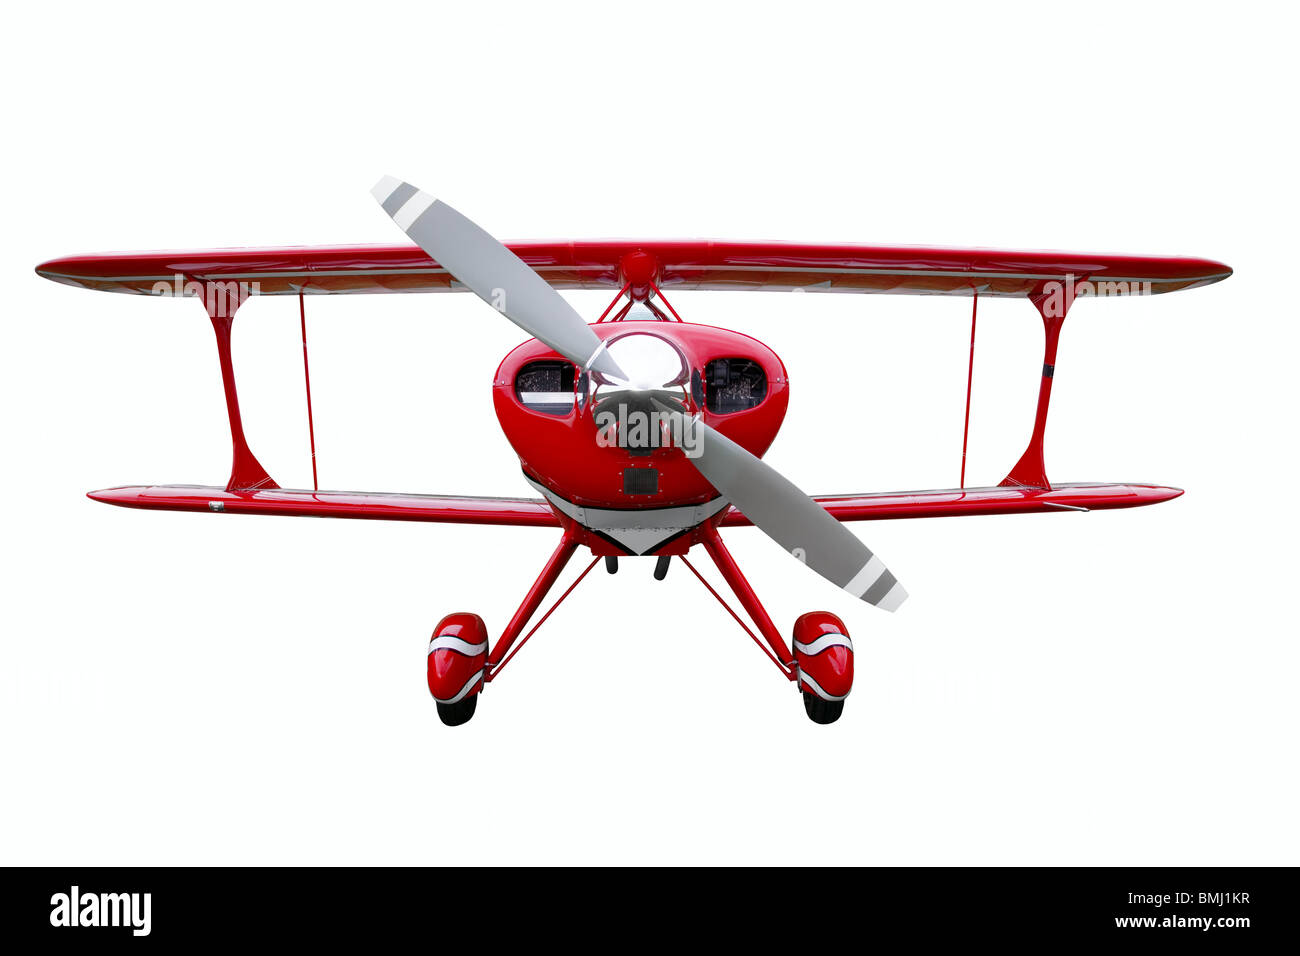 A red biplane isolated on a white background. - Stock Image